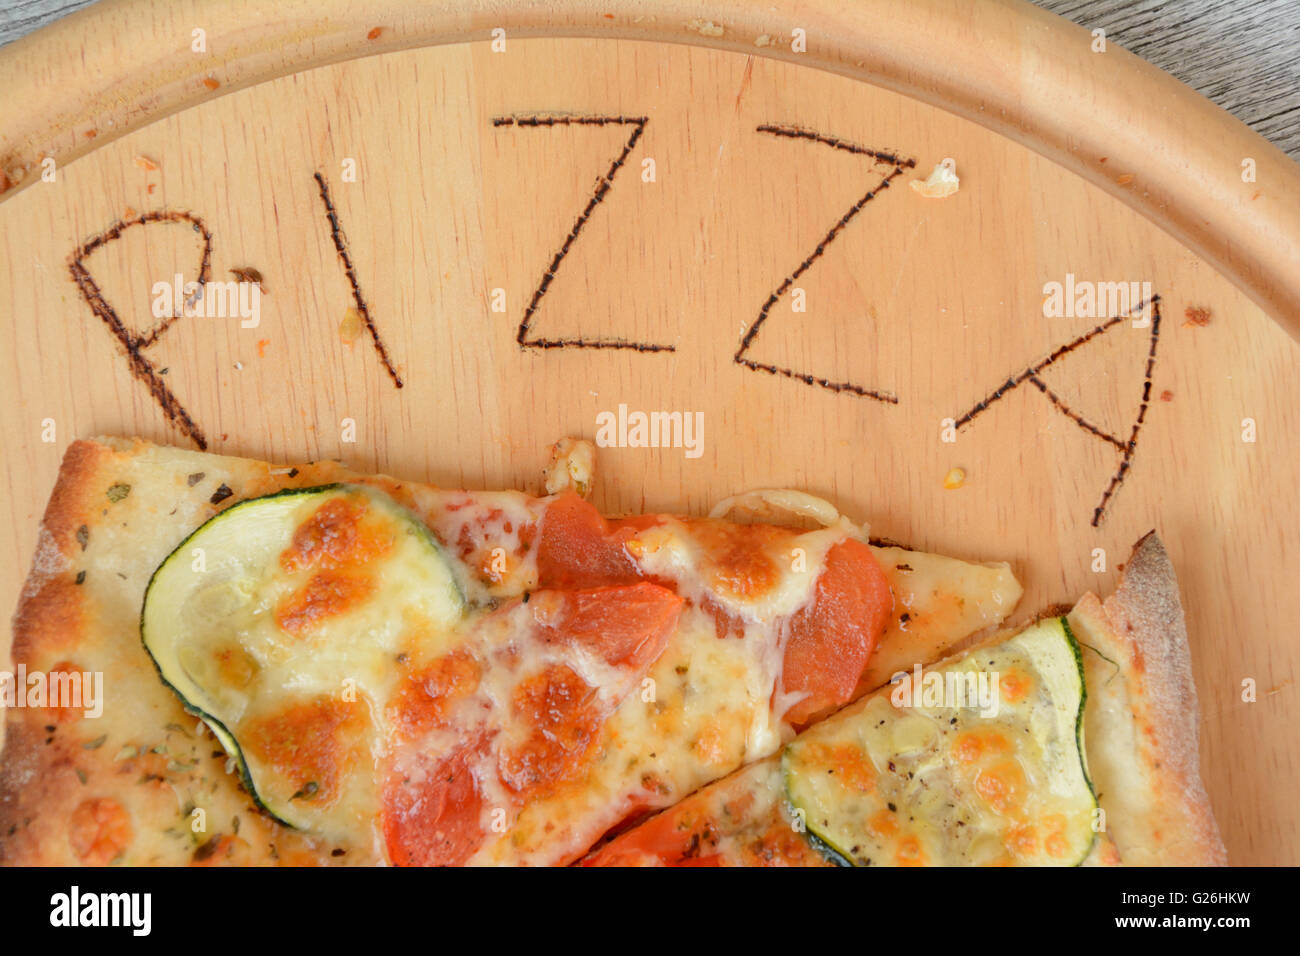 Pizza and pizza word scorched on round wooden plate - Stock Image